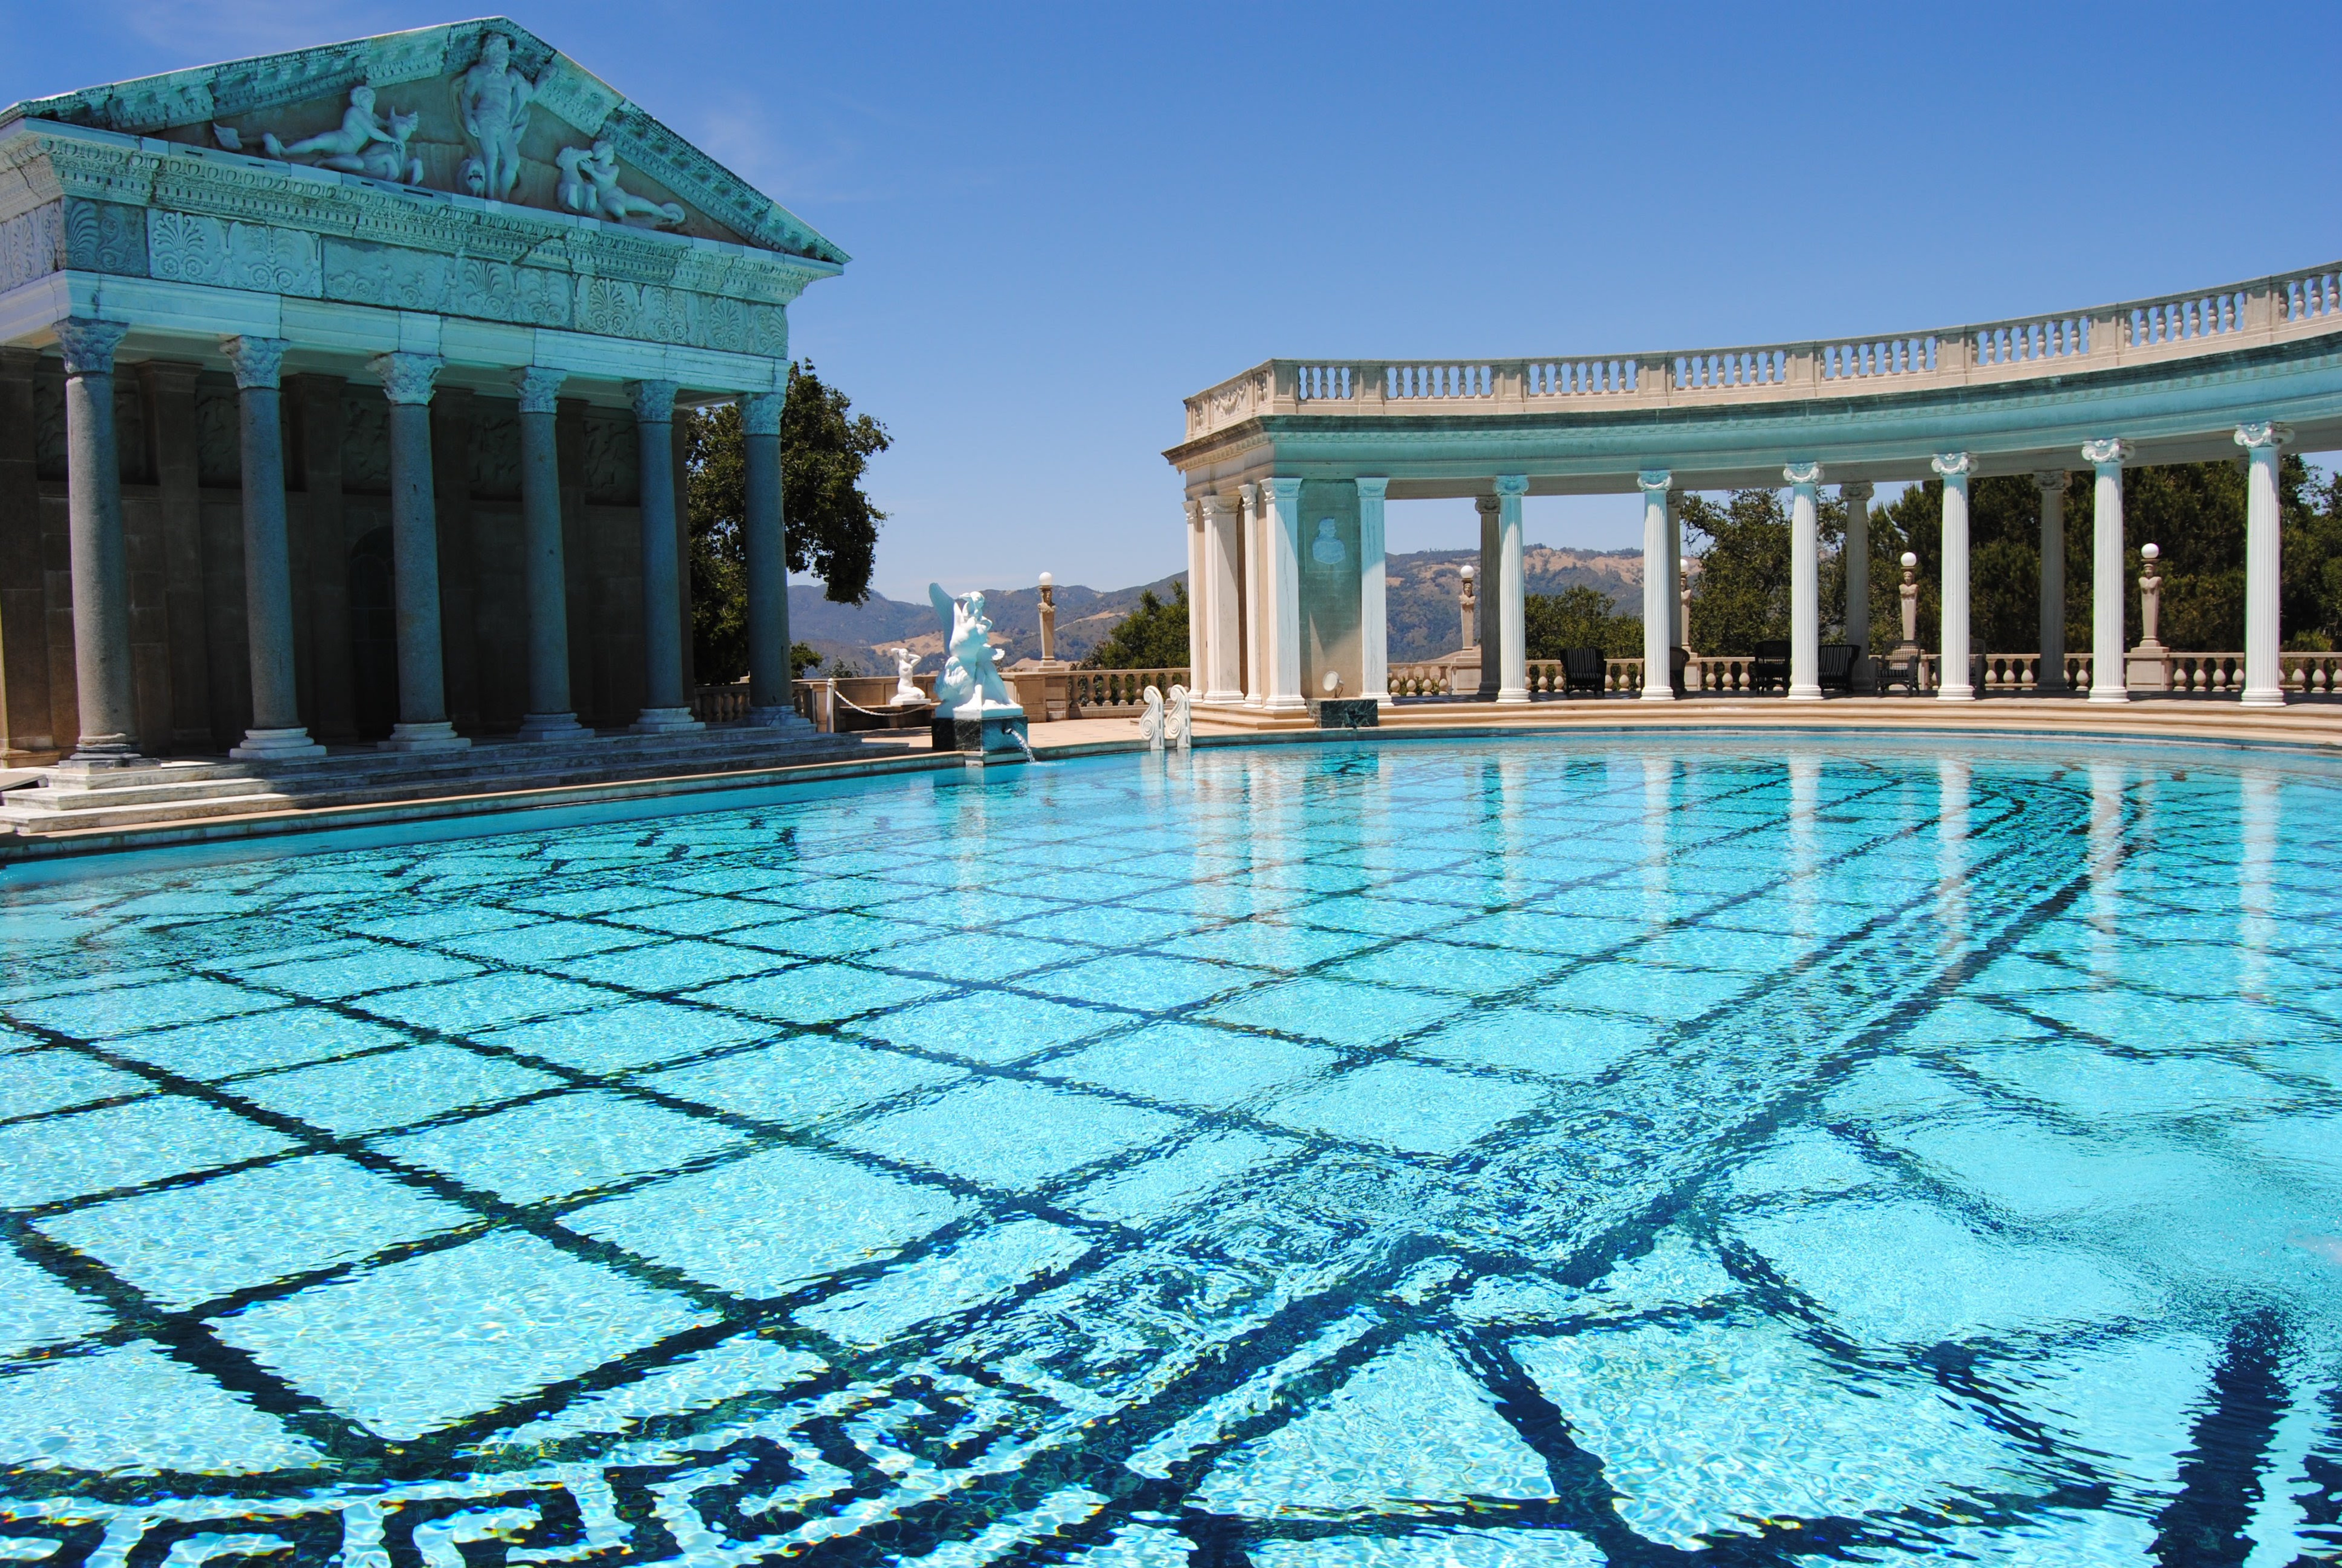 640px-Vista_-_Hearst_Castle_-_DSC06375.jpg